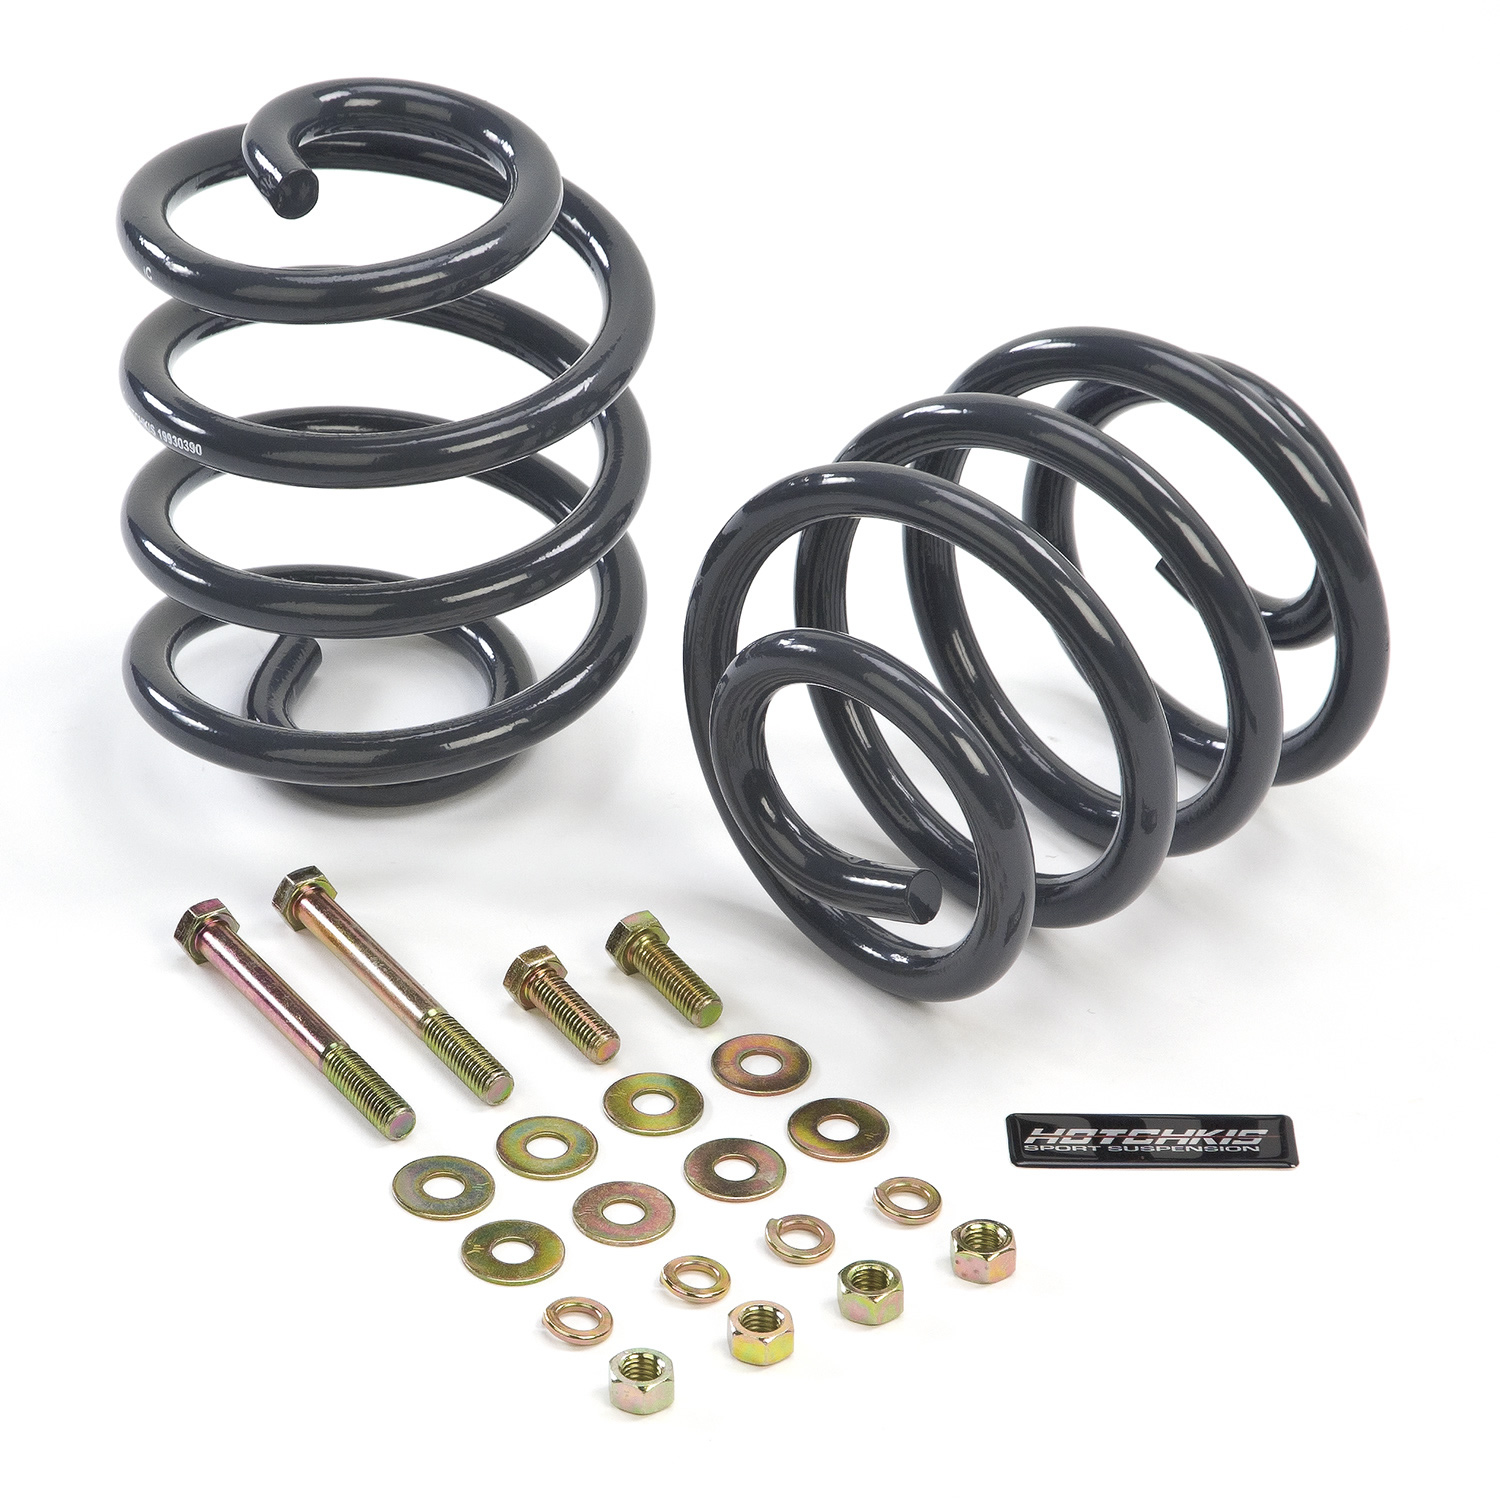 1967-72 Chevy C-10 Pickup Rear Sport Coil Springs from Hotchkis Sport Suspension